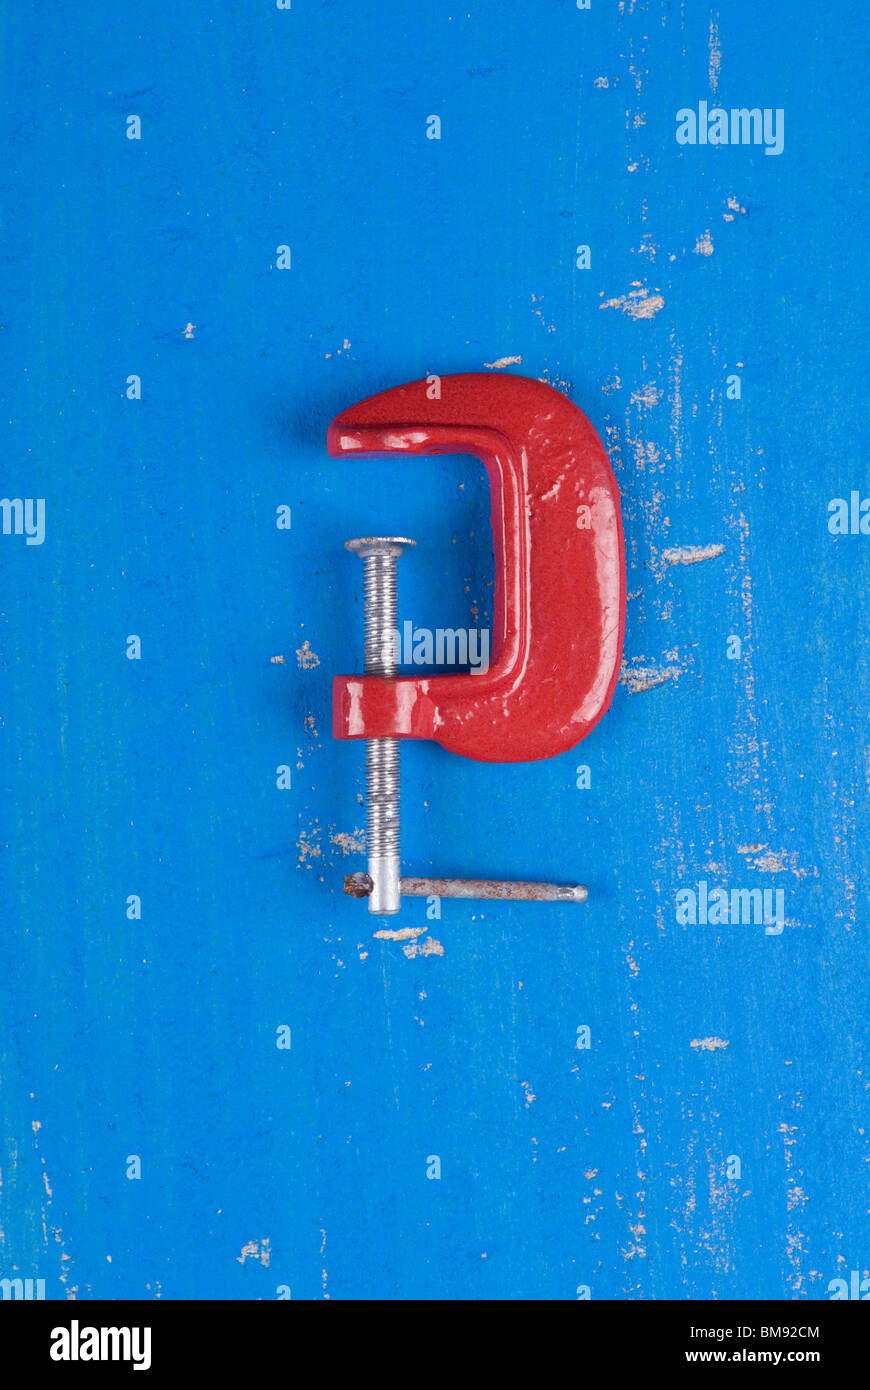 Metal C clamp over a blue wooden background - Stock Image